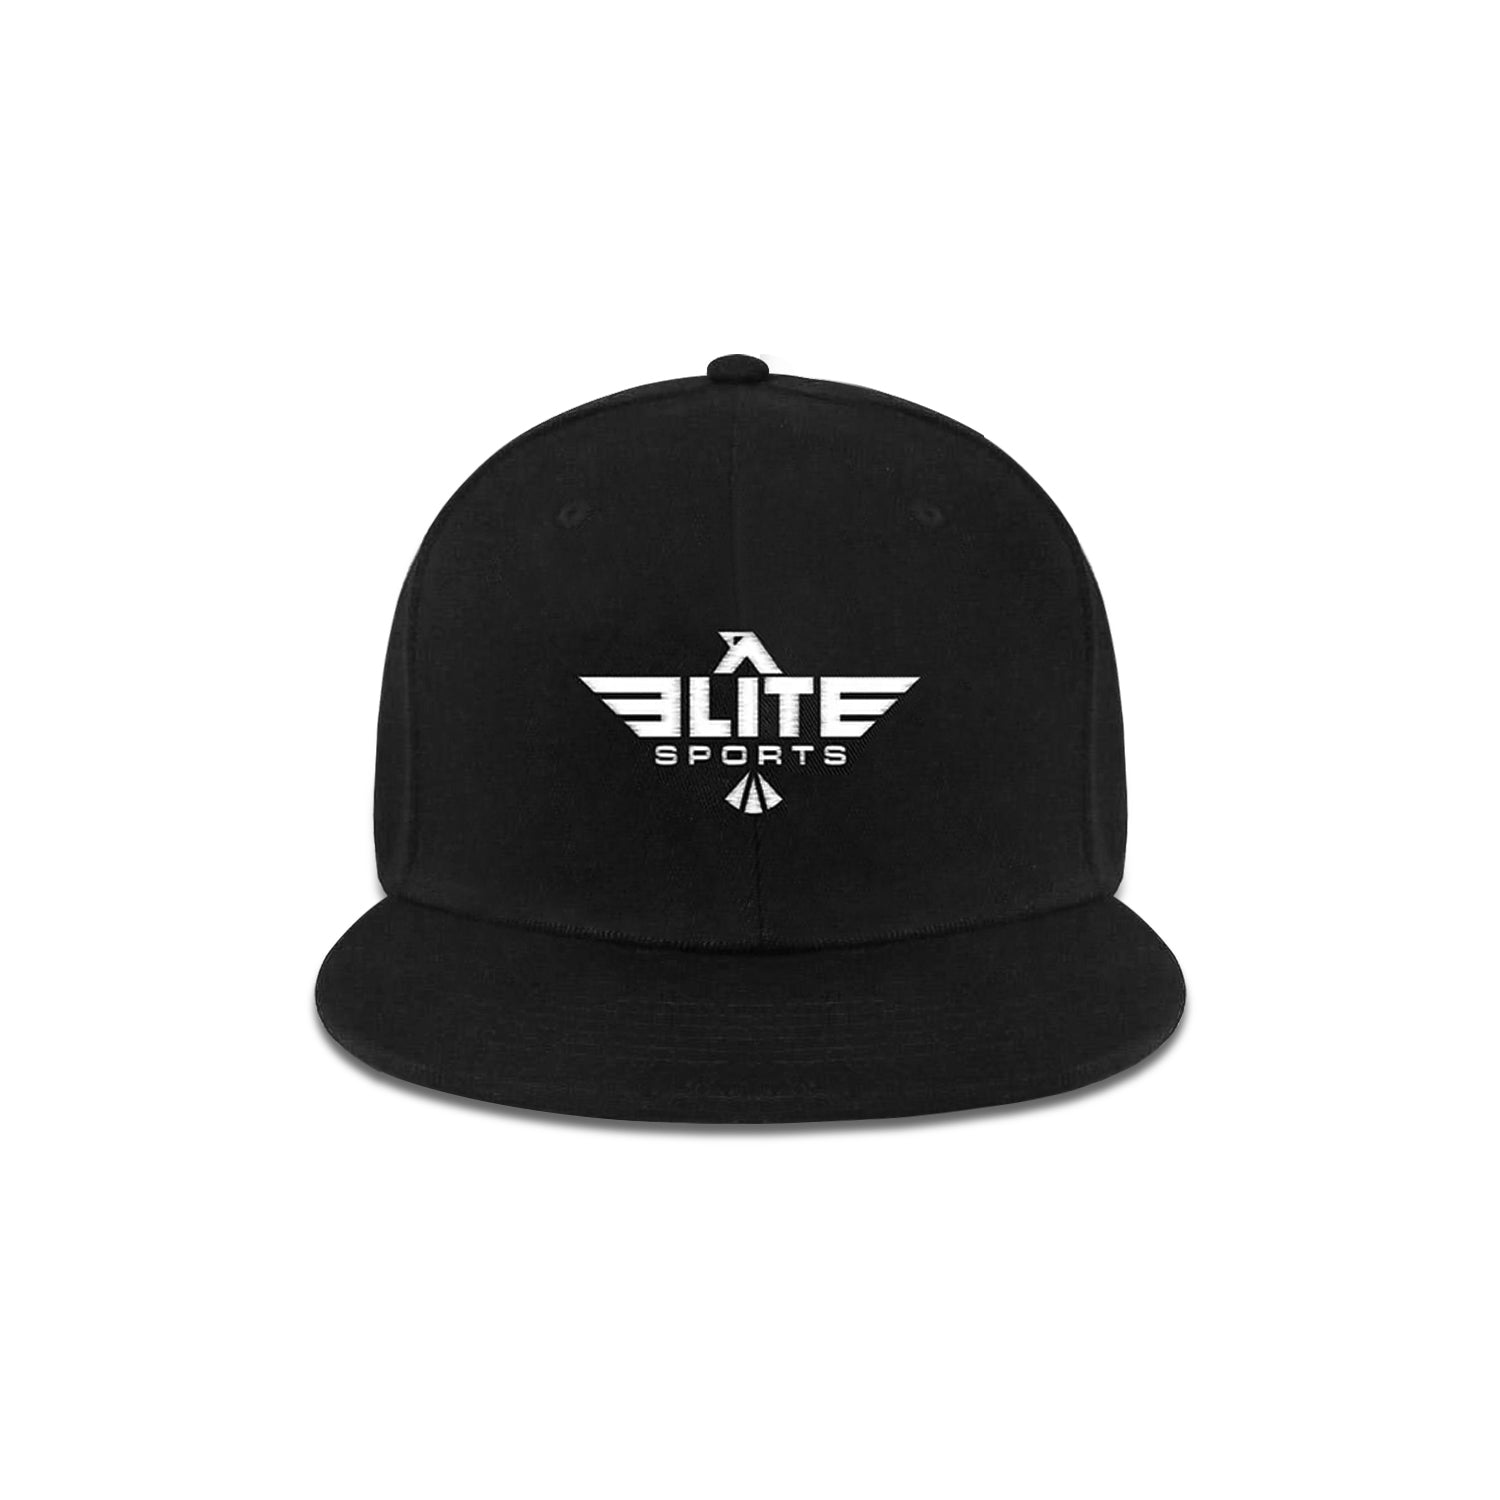 Elite Sports Snapback Black Taekwondo Cap